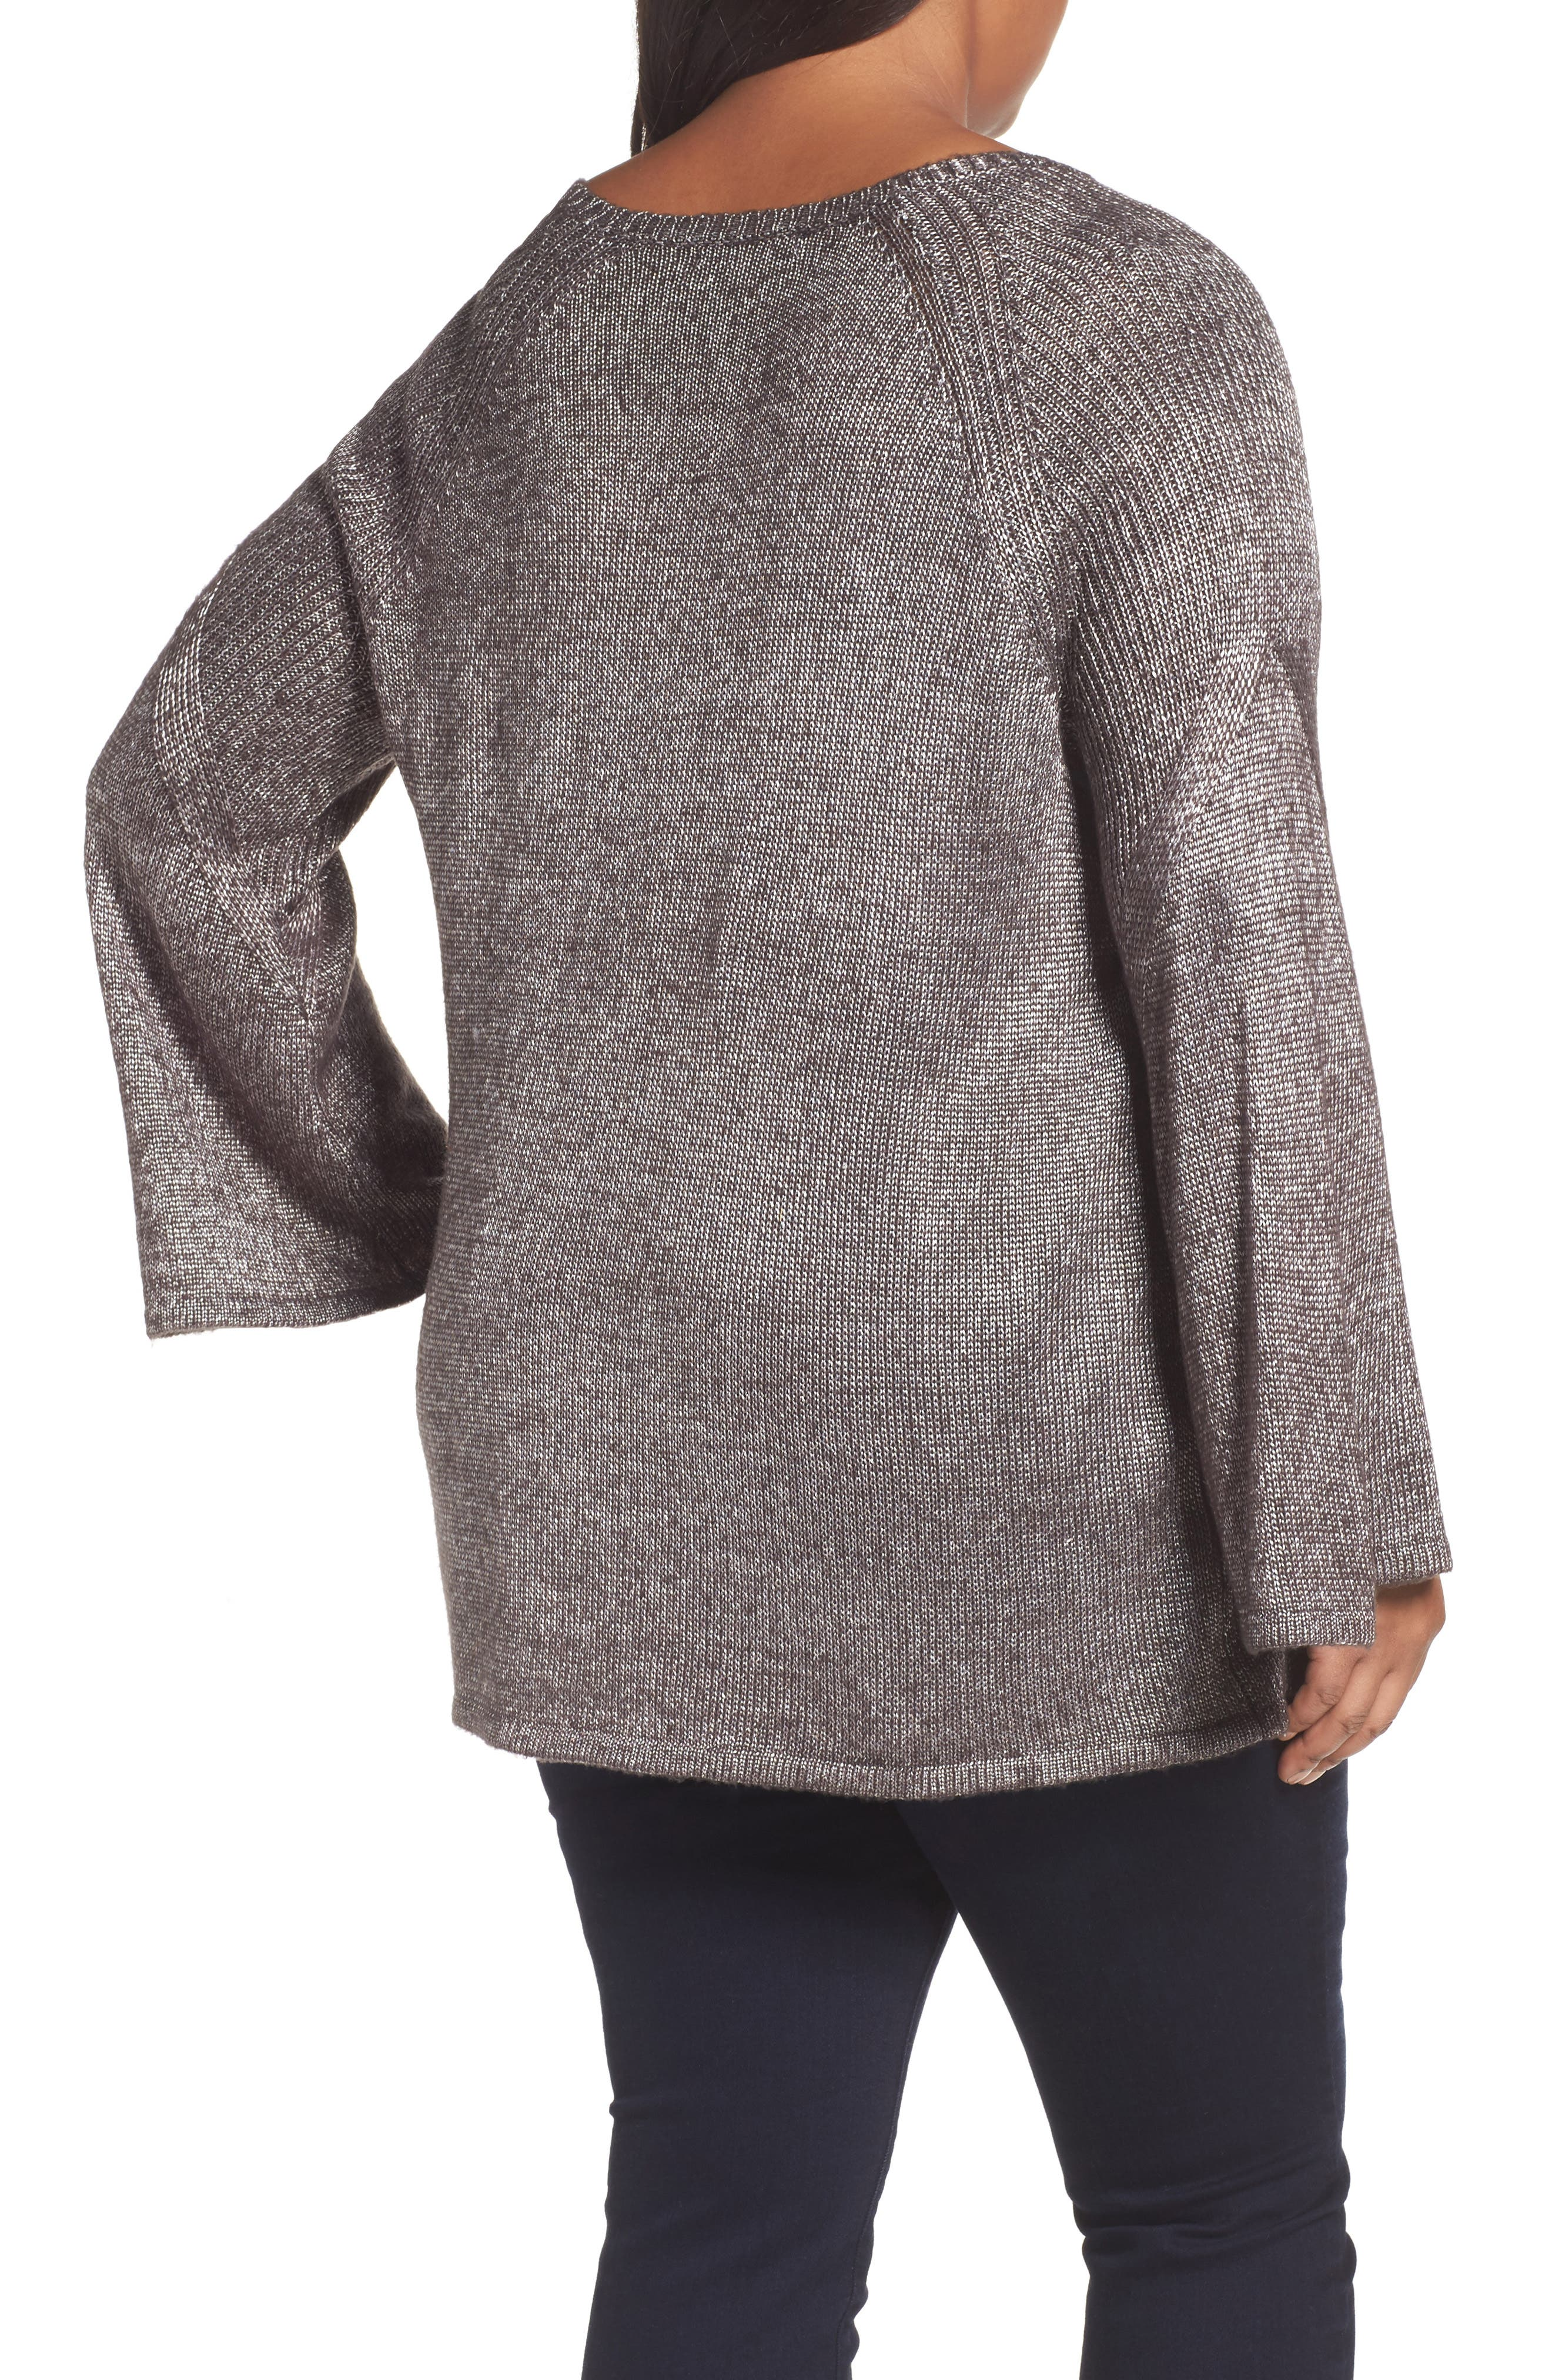 Bell Sleeve Sweater,                             Alternate thumbnail 3, color,